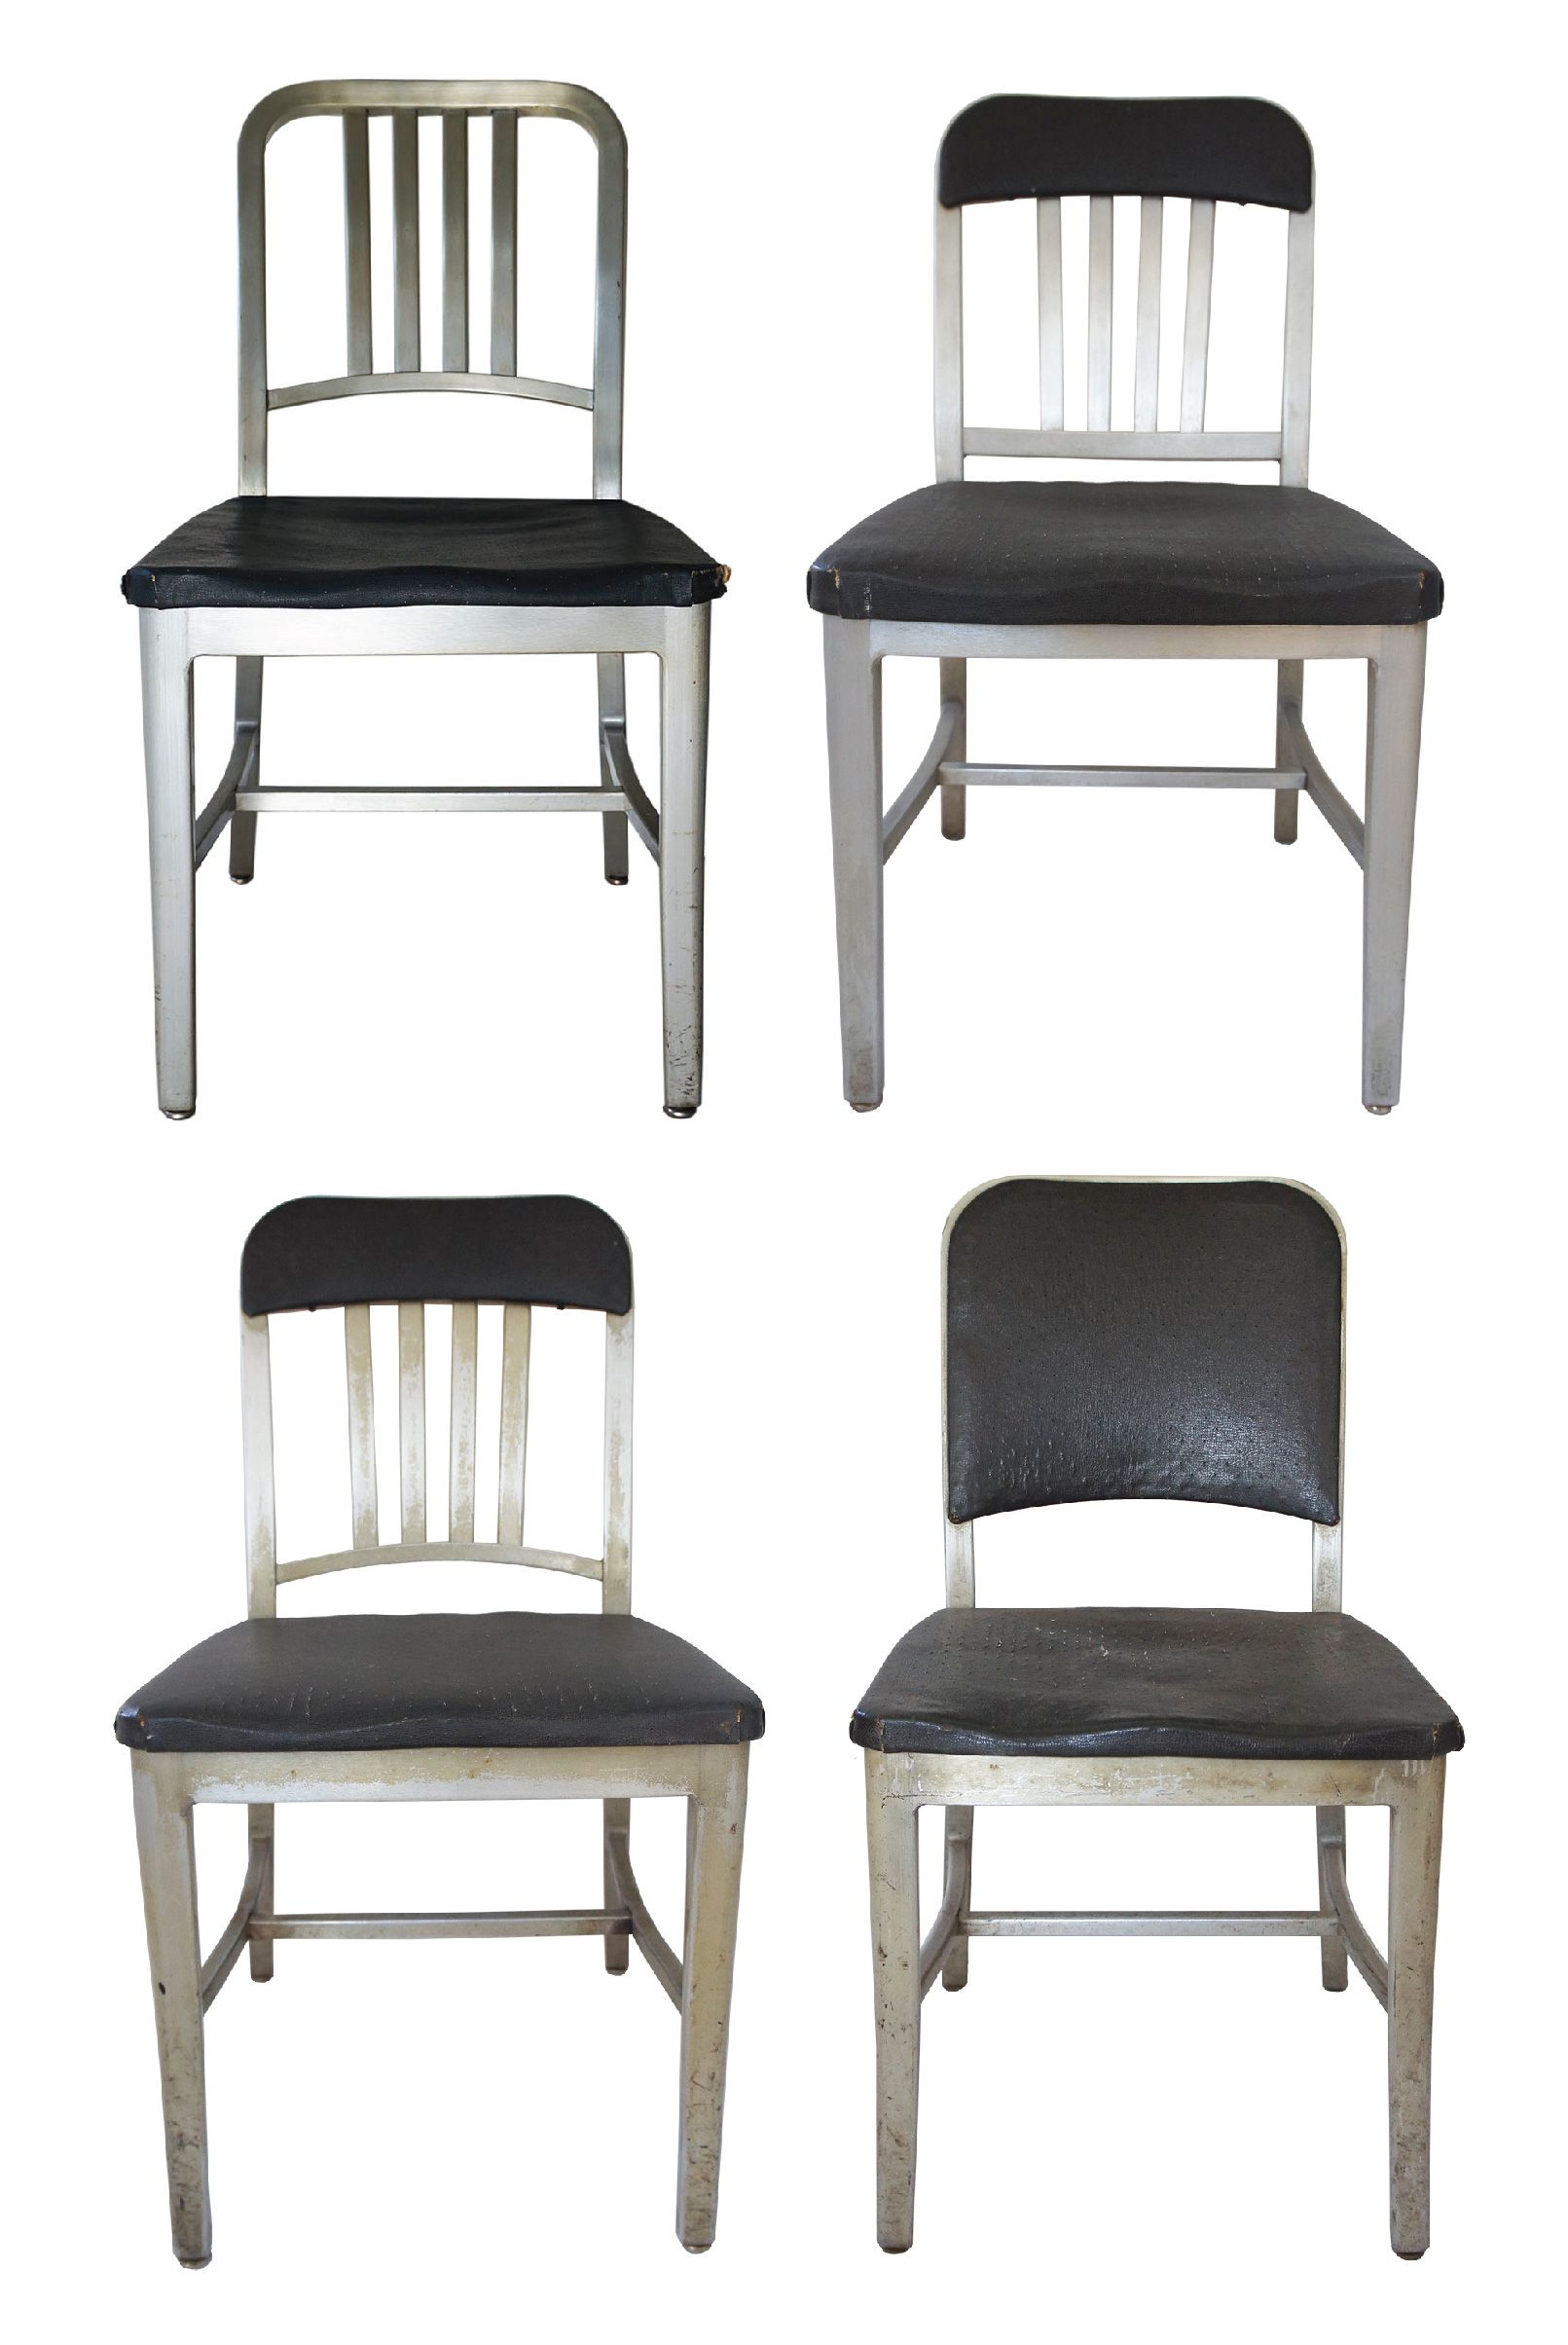 Emeco Aluminum Navy Chairs, Assorted   Set Of 4